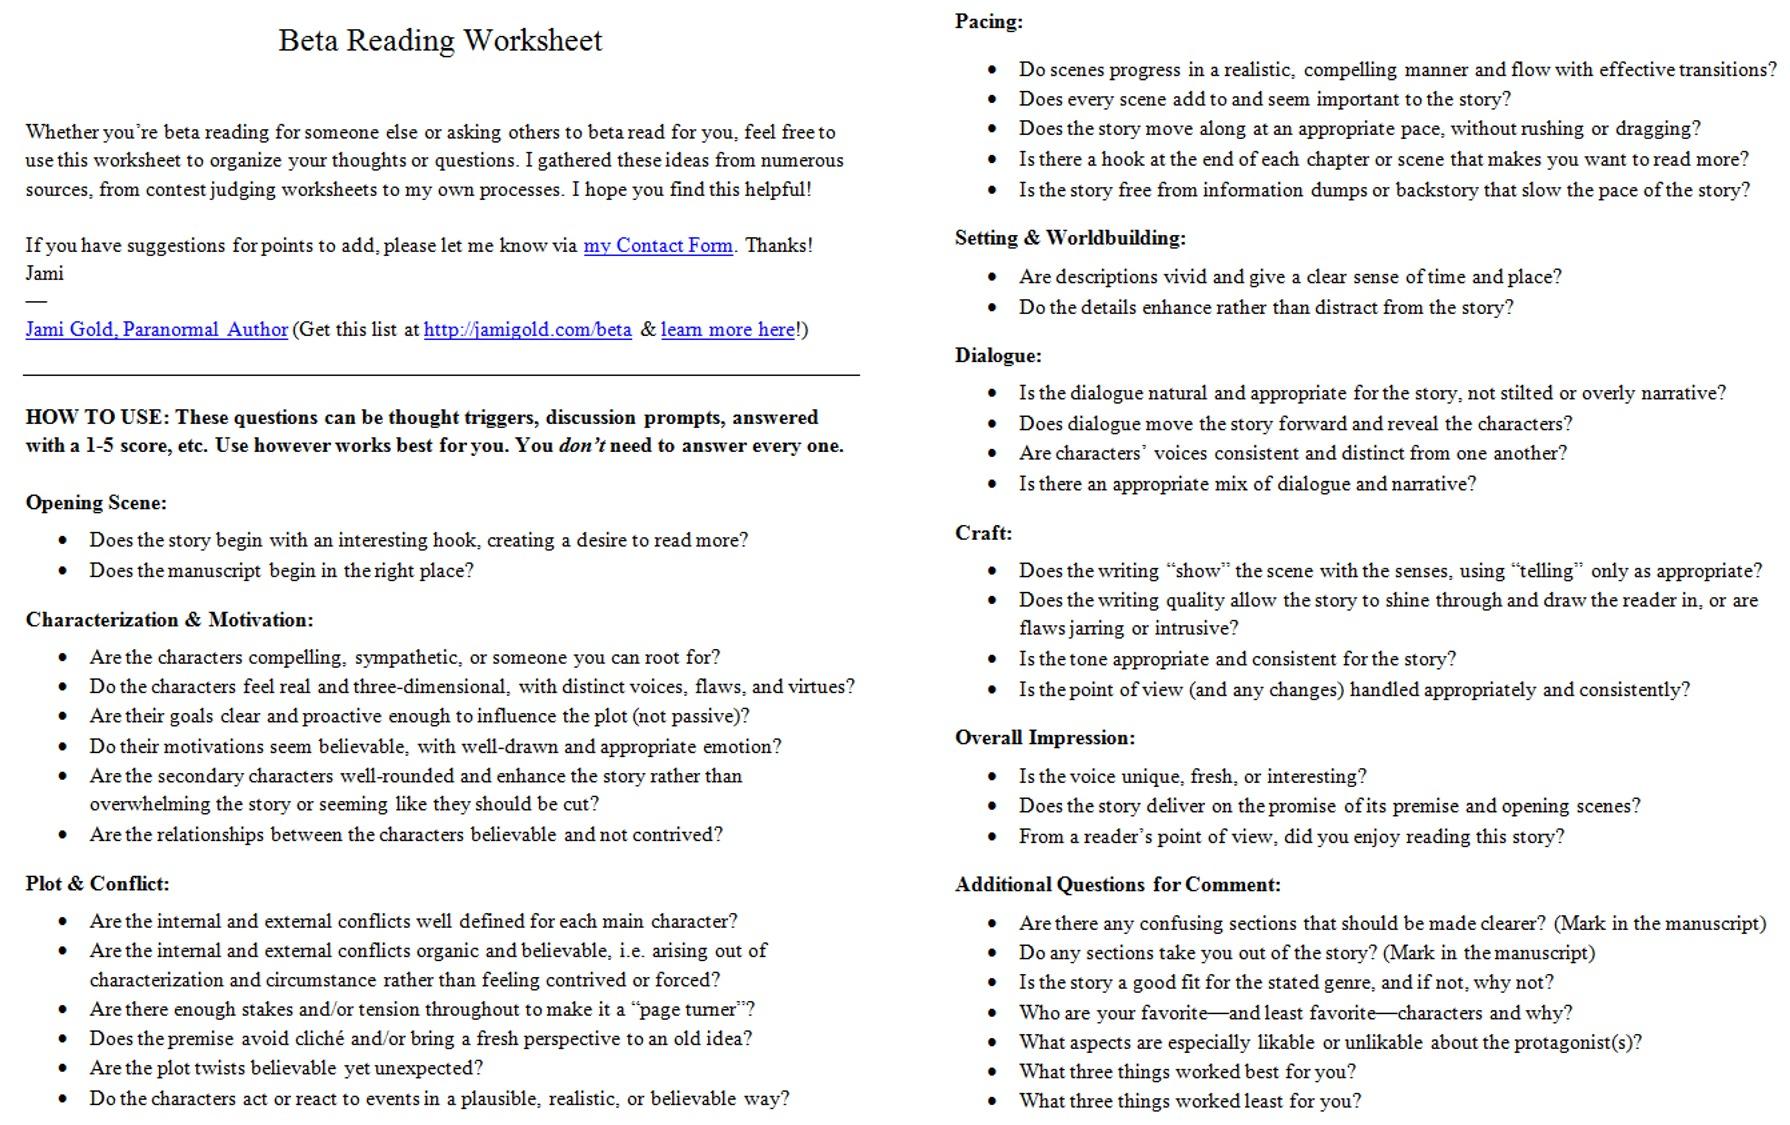 Proatmealus  Ravishing Worksheets For Writers  Jami Gold Paranormal Author With Fair Screen Shot Of The Twopage Beta Reading Worksheet With Beauteous Second Grade Free Worksheets Also Life Cycles Worksheets In Addition Regular Plurals Worksheet And Nd Grade Fun Math Worksheets As Well As Motion Graph Worksheets Additionally Printable Anatomy Worksheets From Jamigoldcom With Proatmealus  Fair Worksheets For Writers  Jami Gold Paranormal Author With Beauteous Screen Shot Of The Twopage Beta Reading Worksheet And Ravishing Second Grade Free Worksheets Also Life Cycles Worksheets In Addition Regular Plurals Worksheet From Jamigoldcom